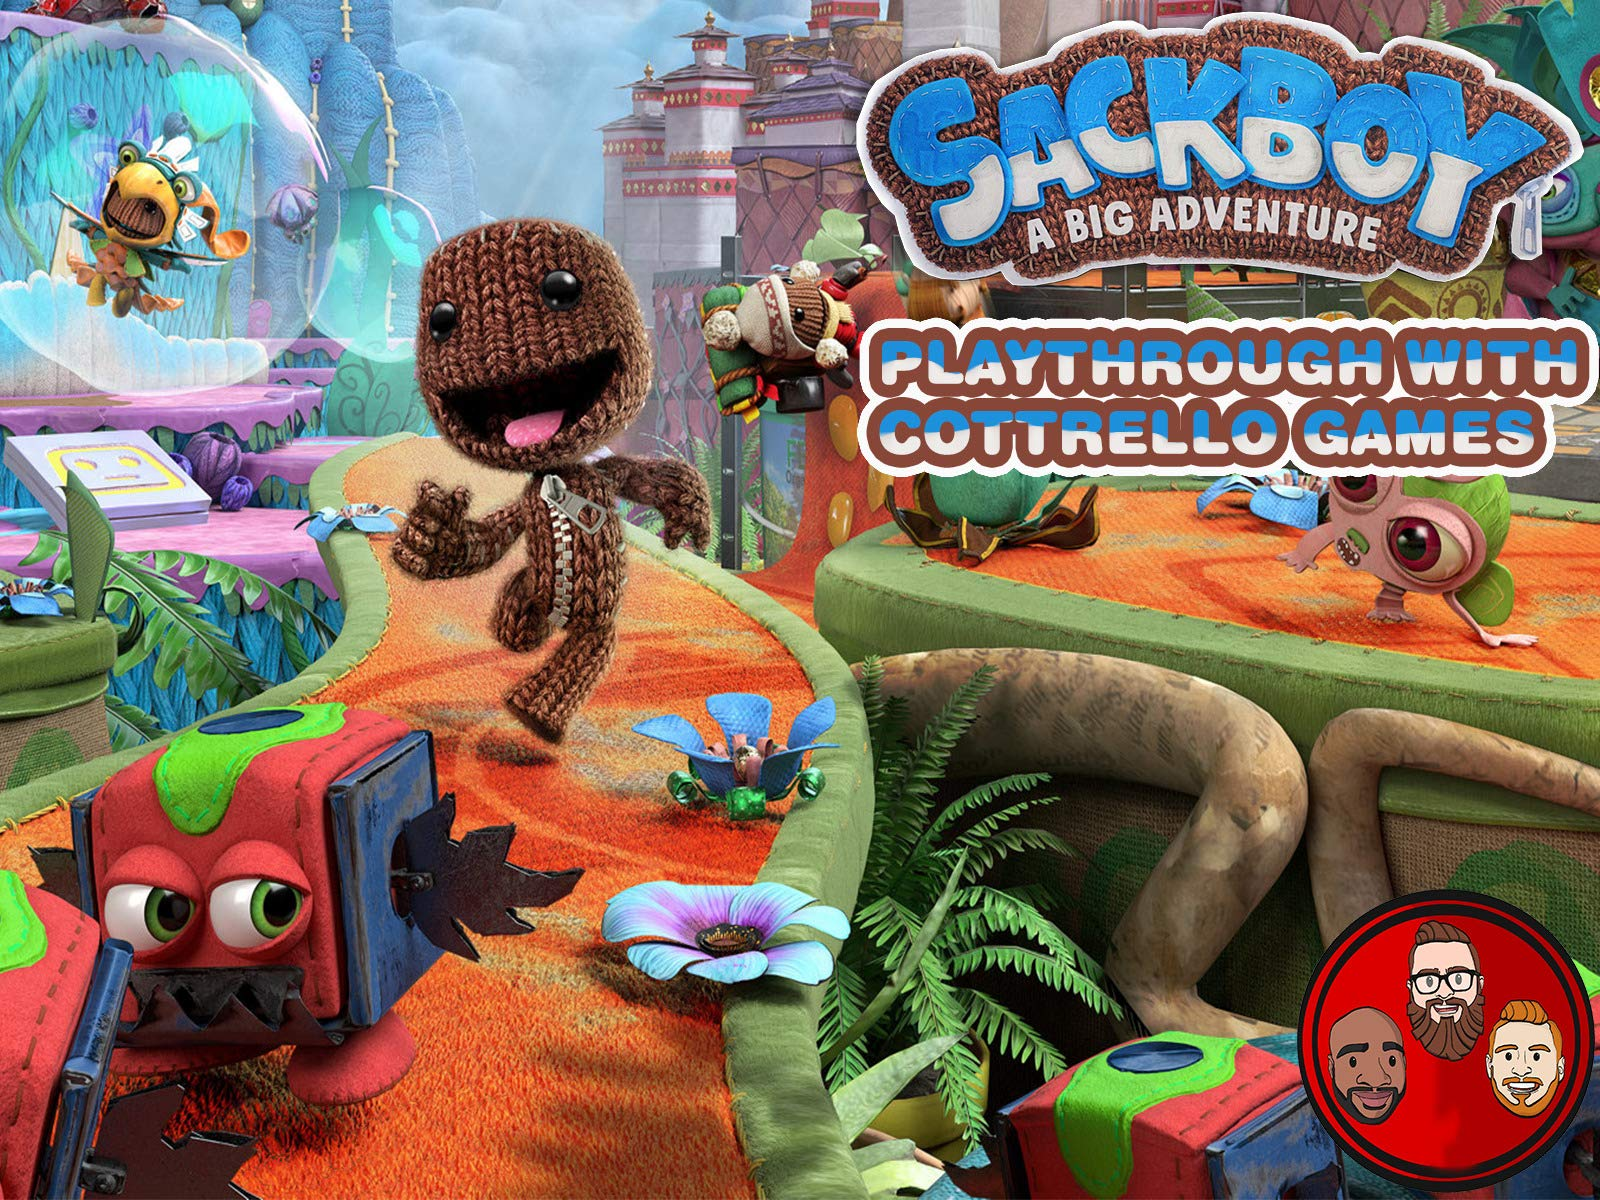 Clip: Sackboy: A Big Adventure Multiplayer Playthrough with Cottrello Games